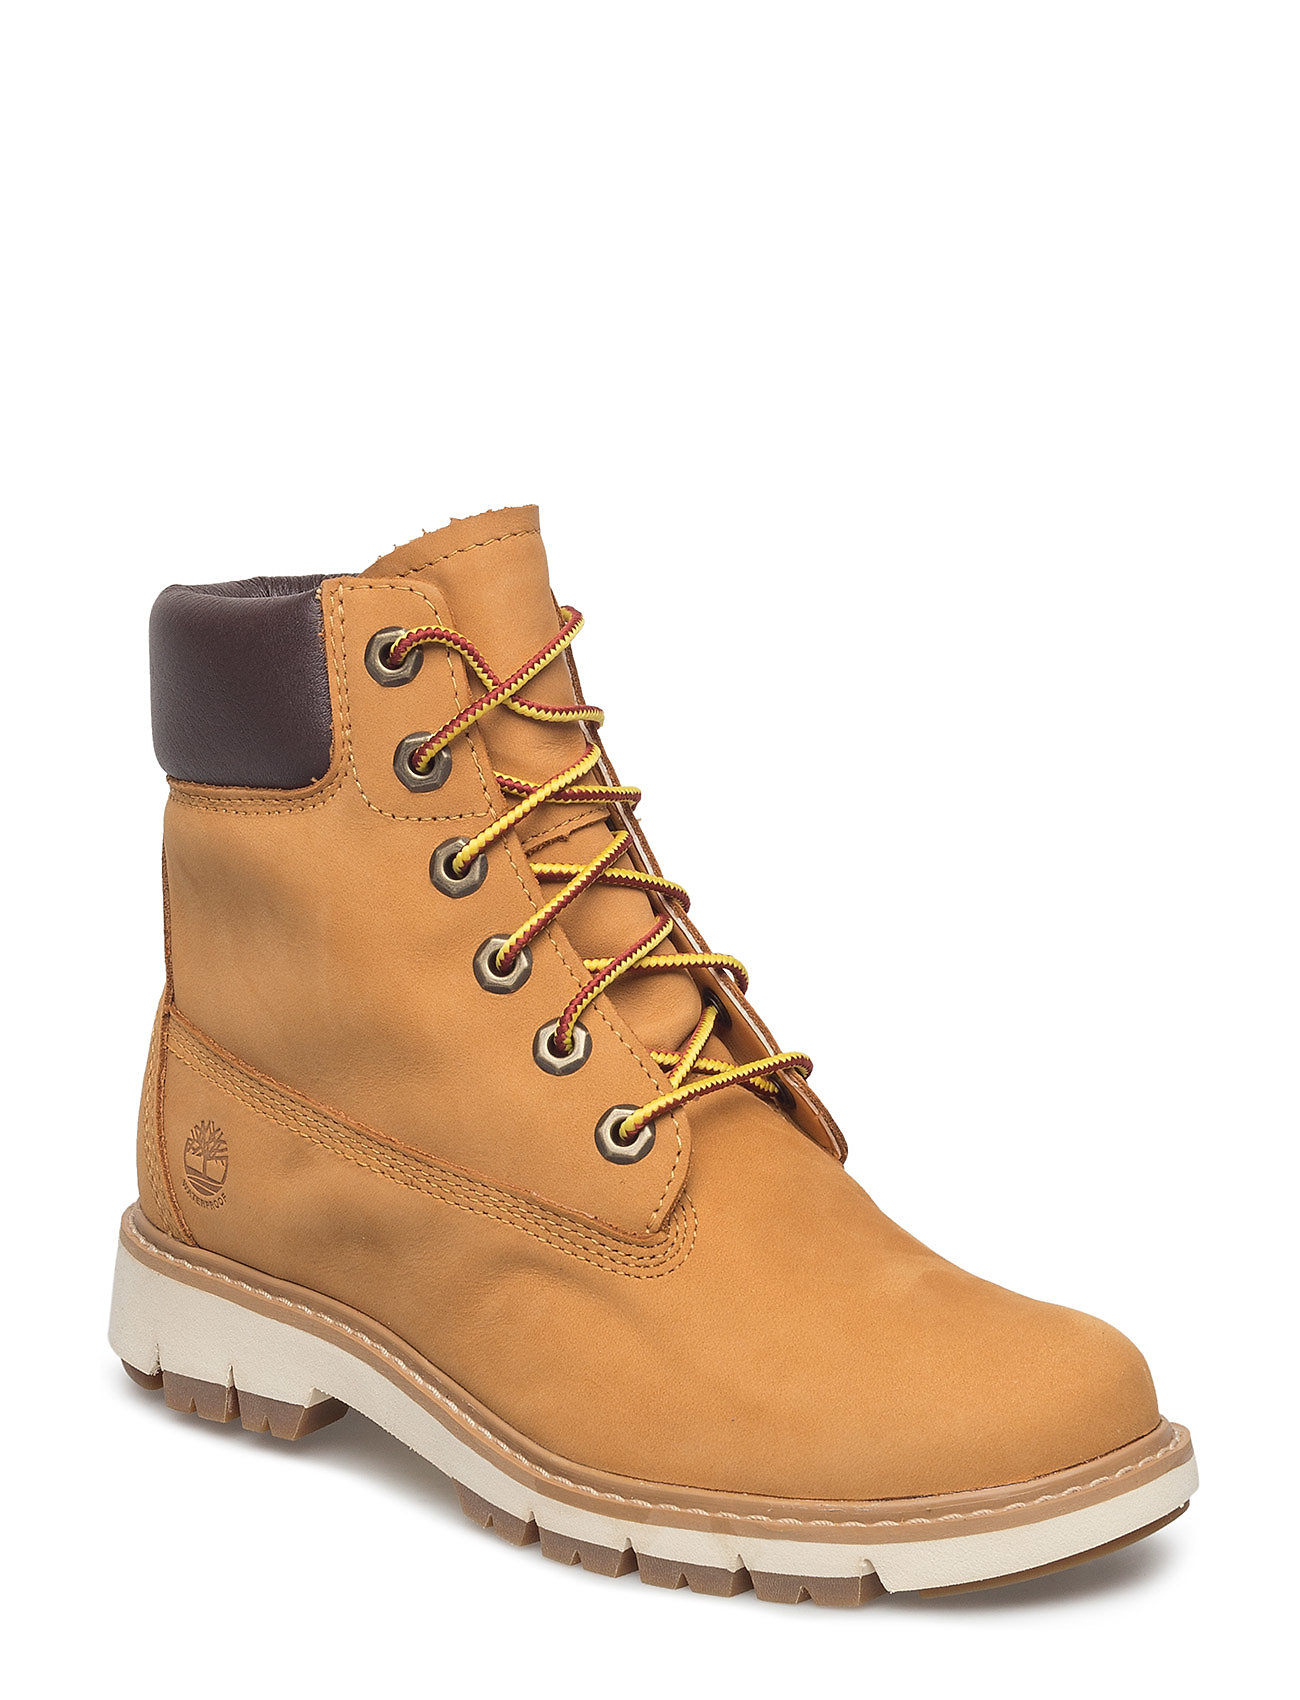 Timberland Lucia Way 6in WP Boot - WHEAT